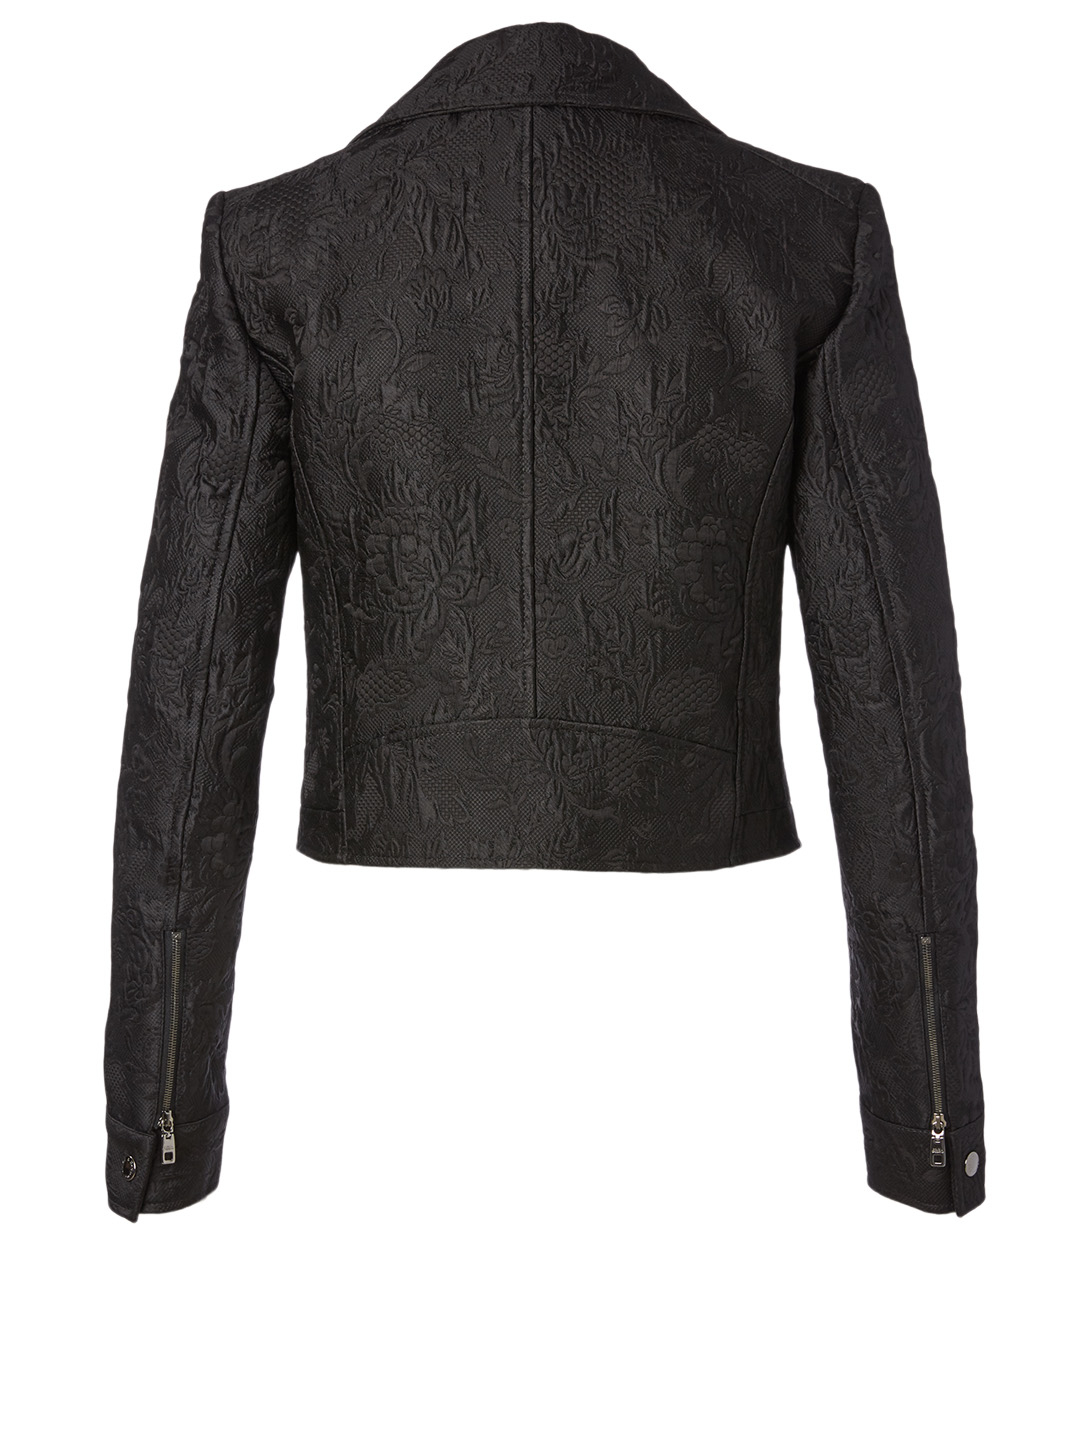 DOLCE & GABBANA Cotton And Silk Floral Jacquard Jacket Women's Black